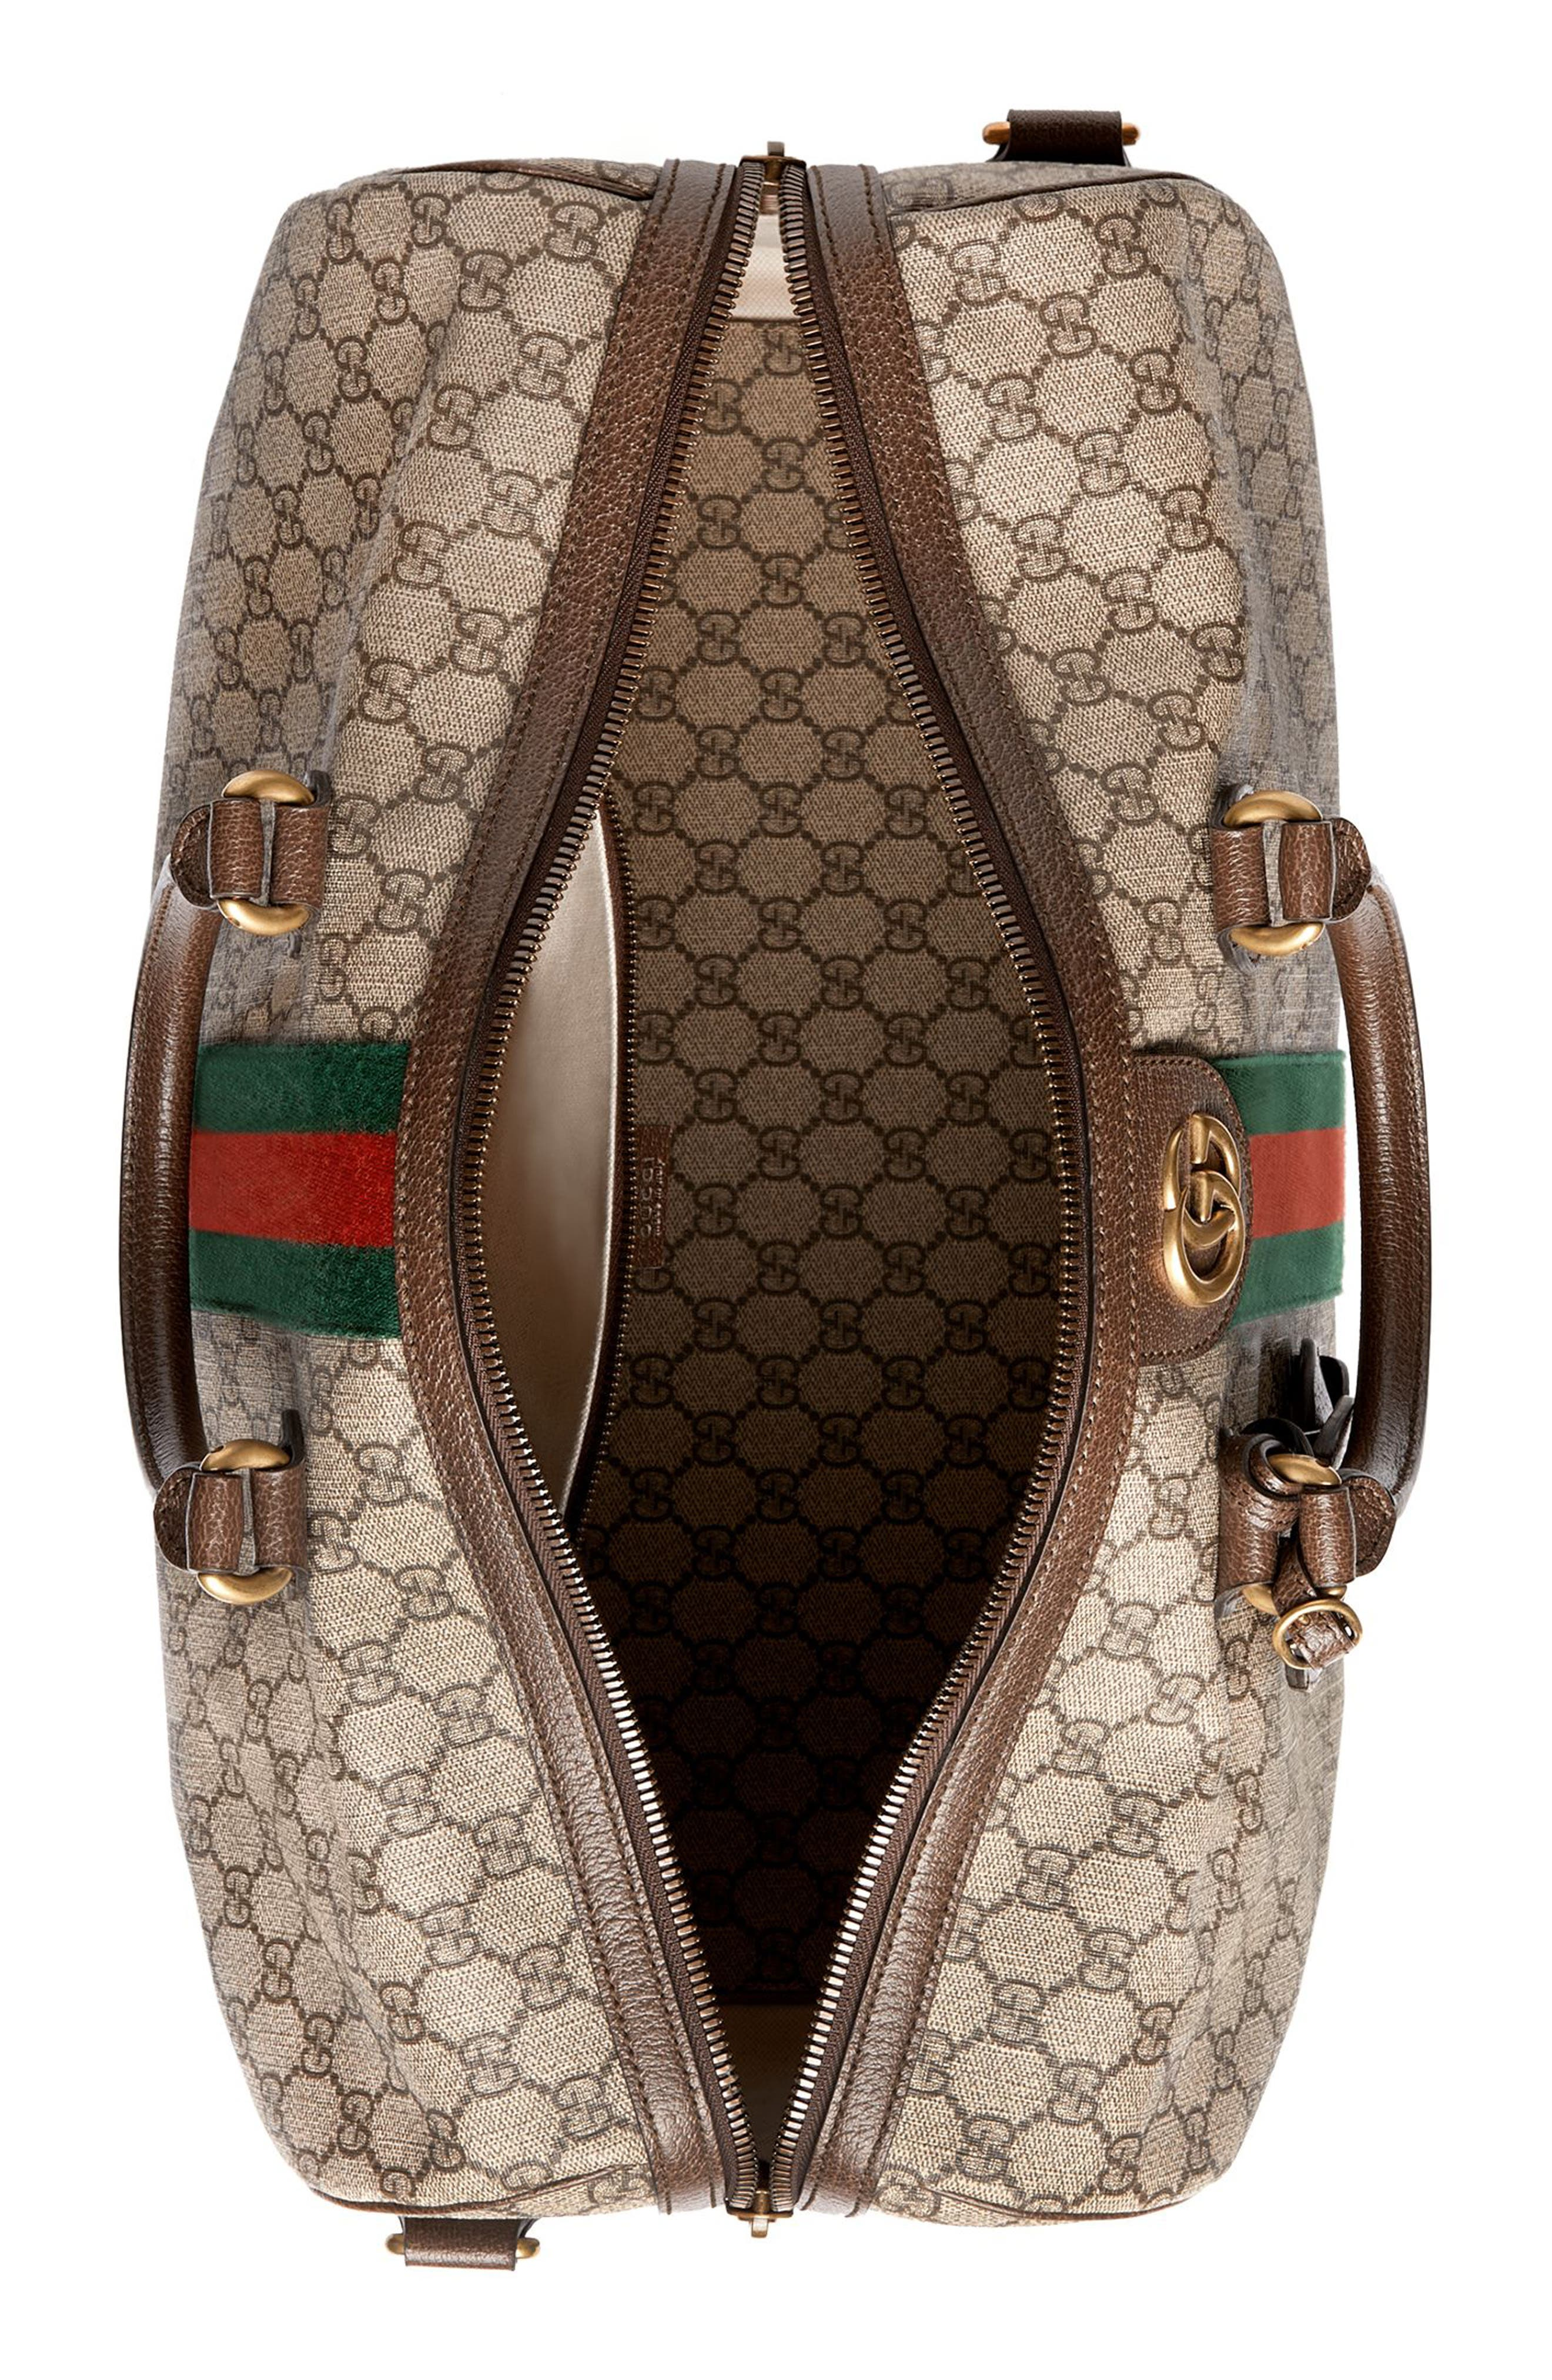 GUCCI,                             Medium Ophidia GG Supreme Carry-On Duffel,                             Alternate thumbnail 2, color,                             BEIGE EBONY/ NEW ACERO